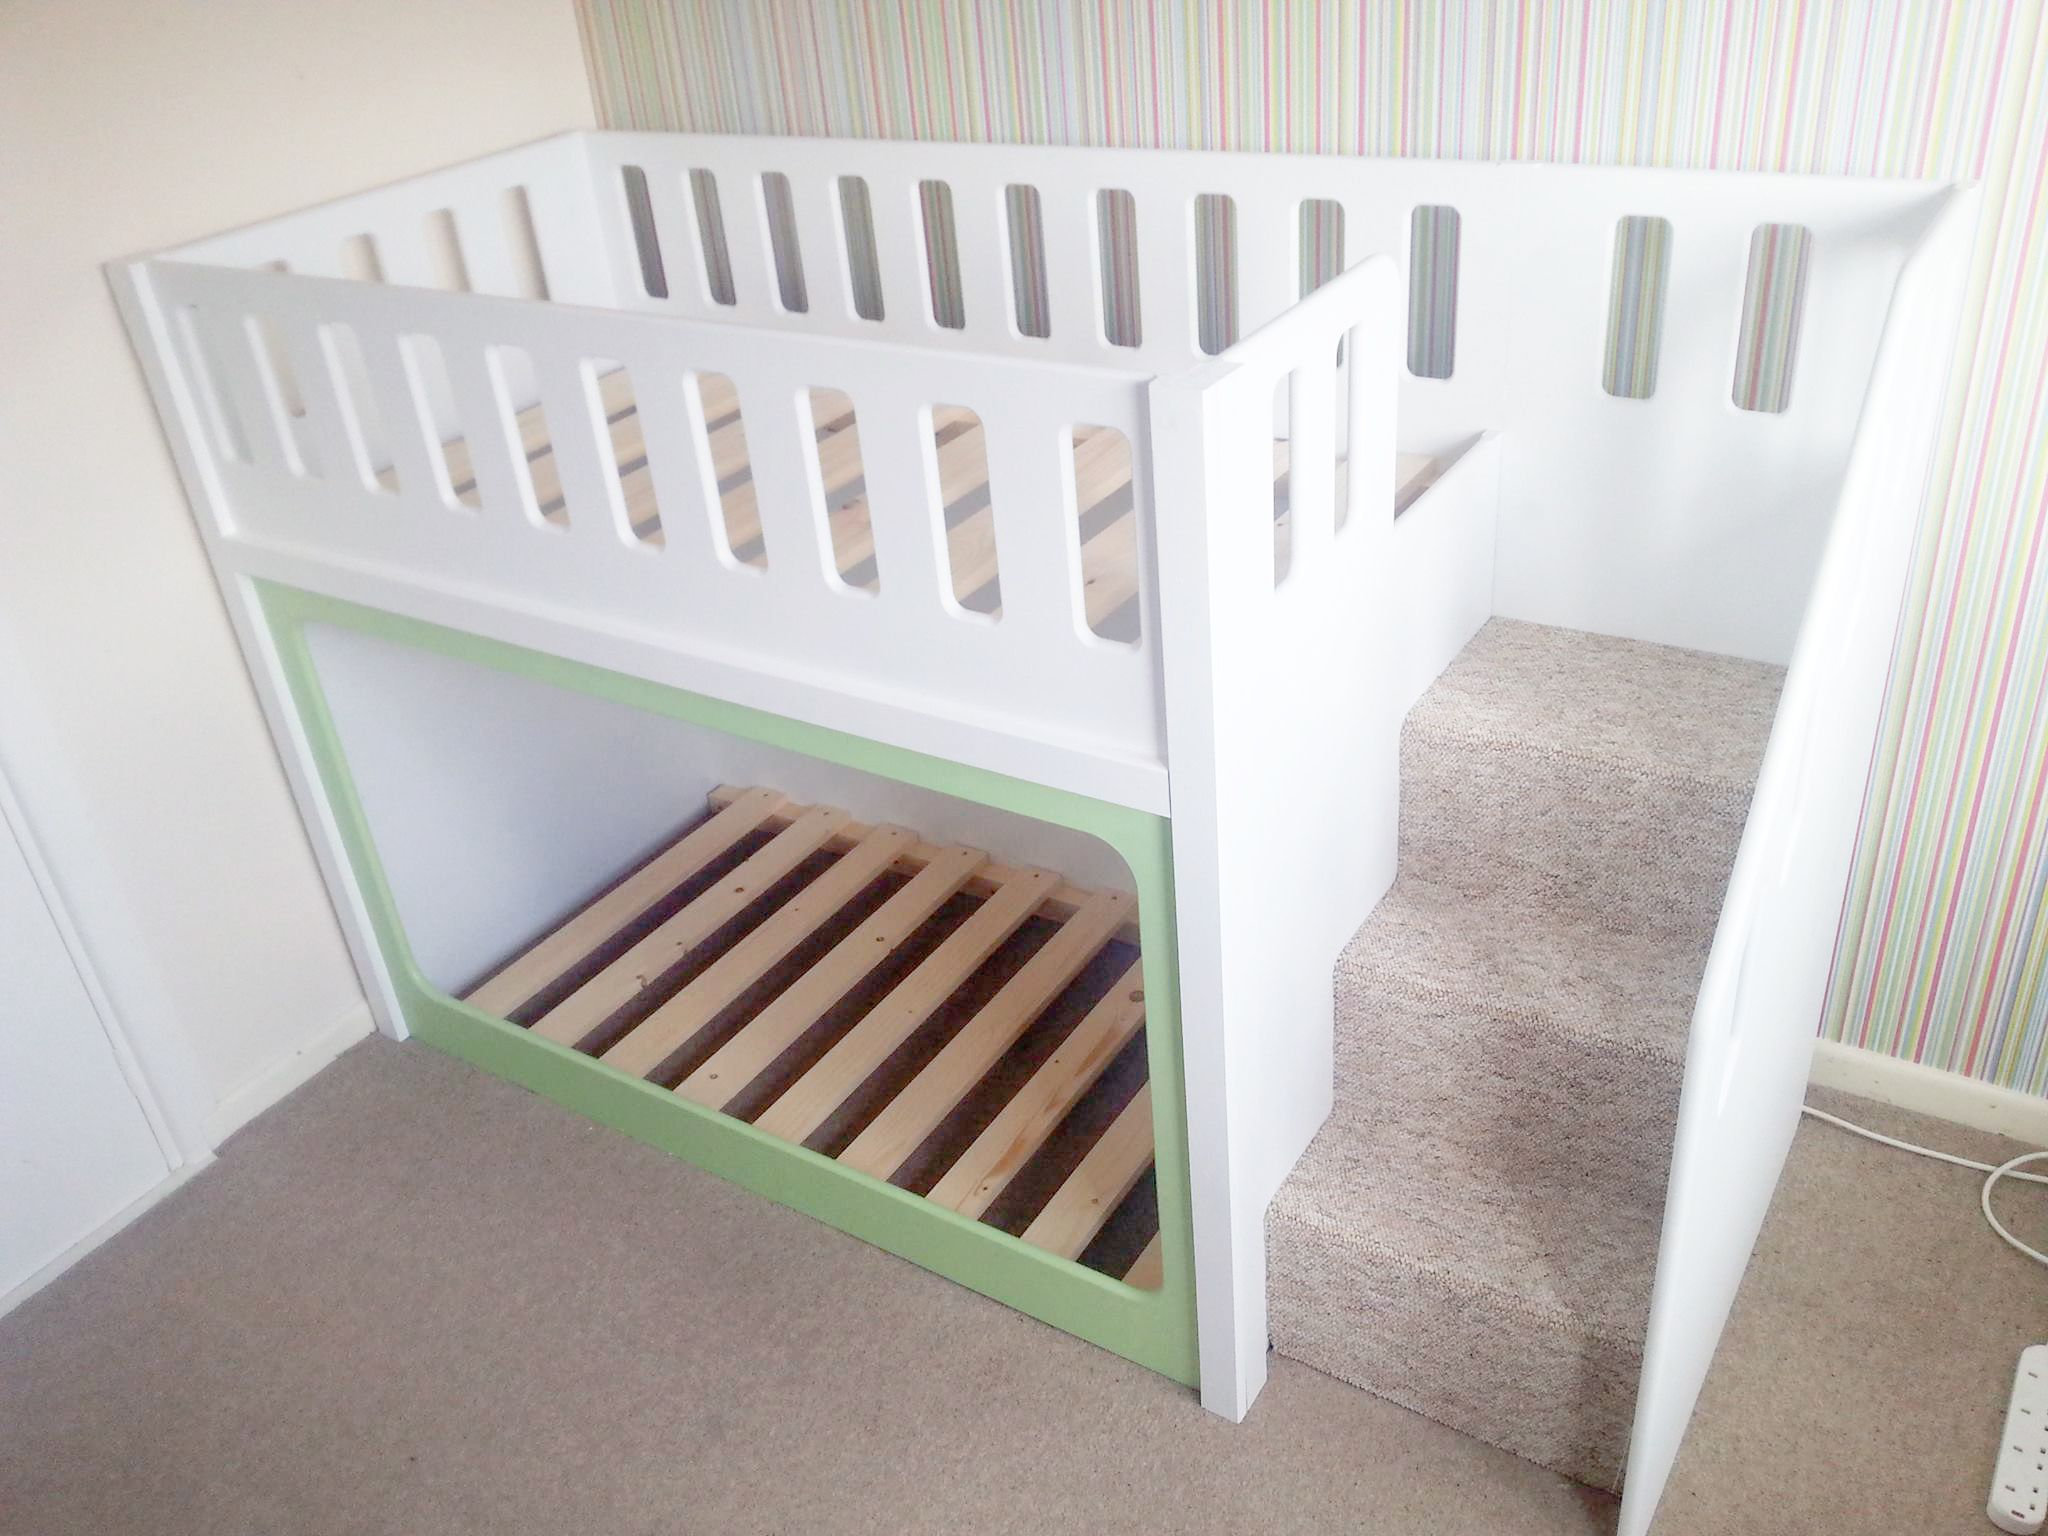 Bunk beds with slide and stairs - Image31 Jpg 2048 1536